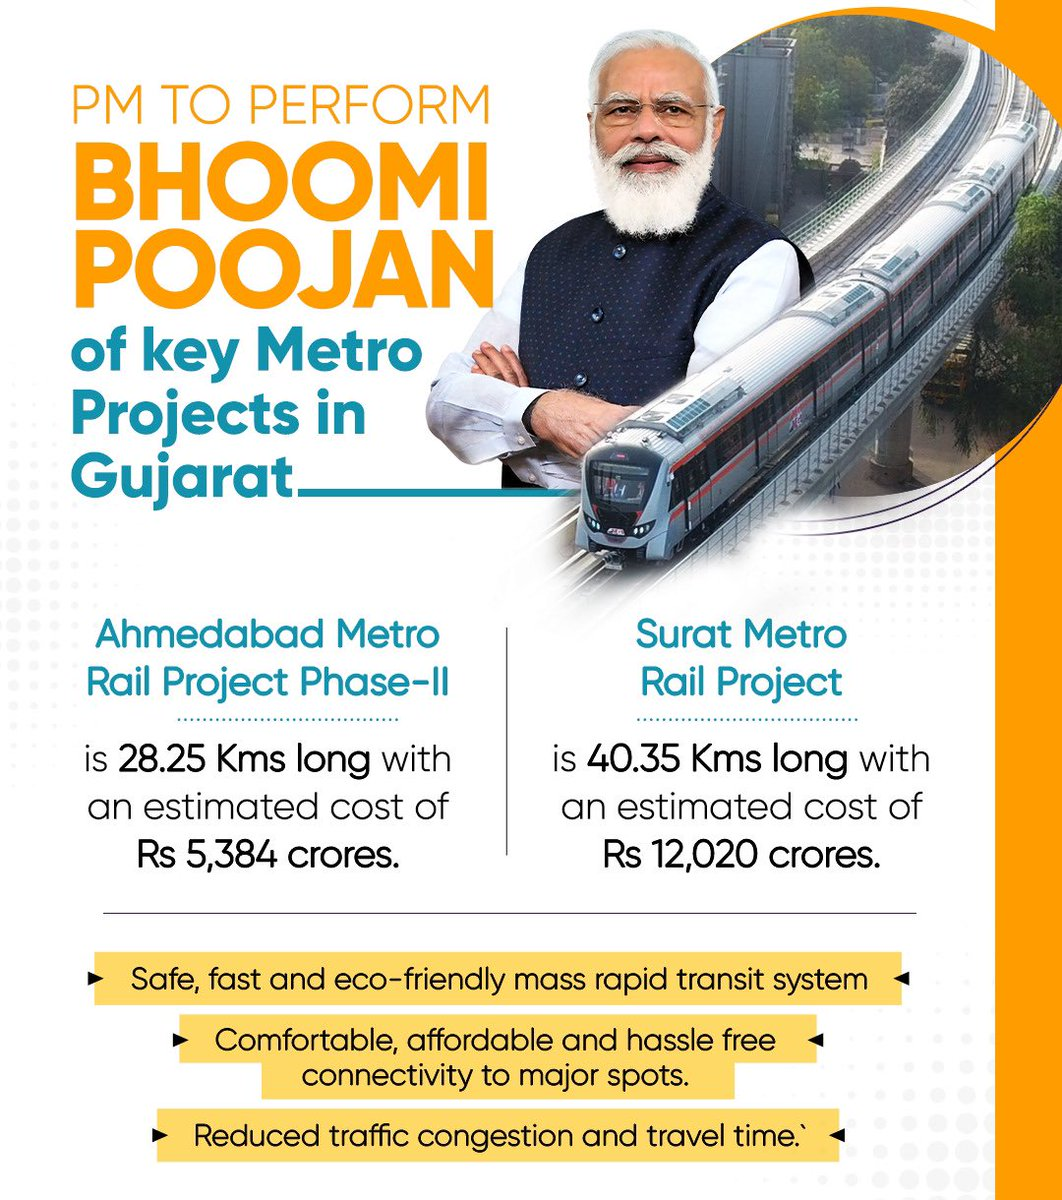 Today is a landmark day for two of Gujarat's leading urban centres. The Bhoomi Poojan of Surat Metro and Phase-2 of the Ahmedabad Metro would take place at 10:30 AM.